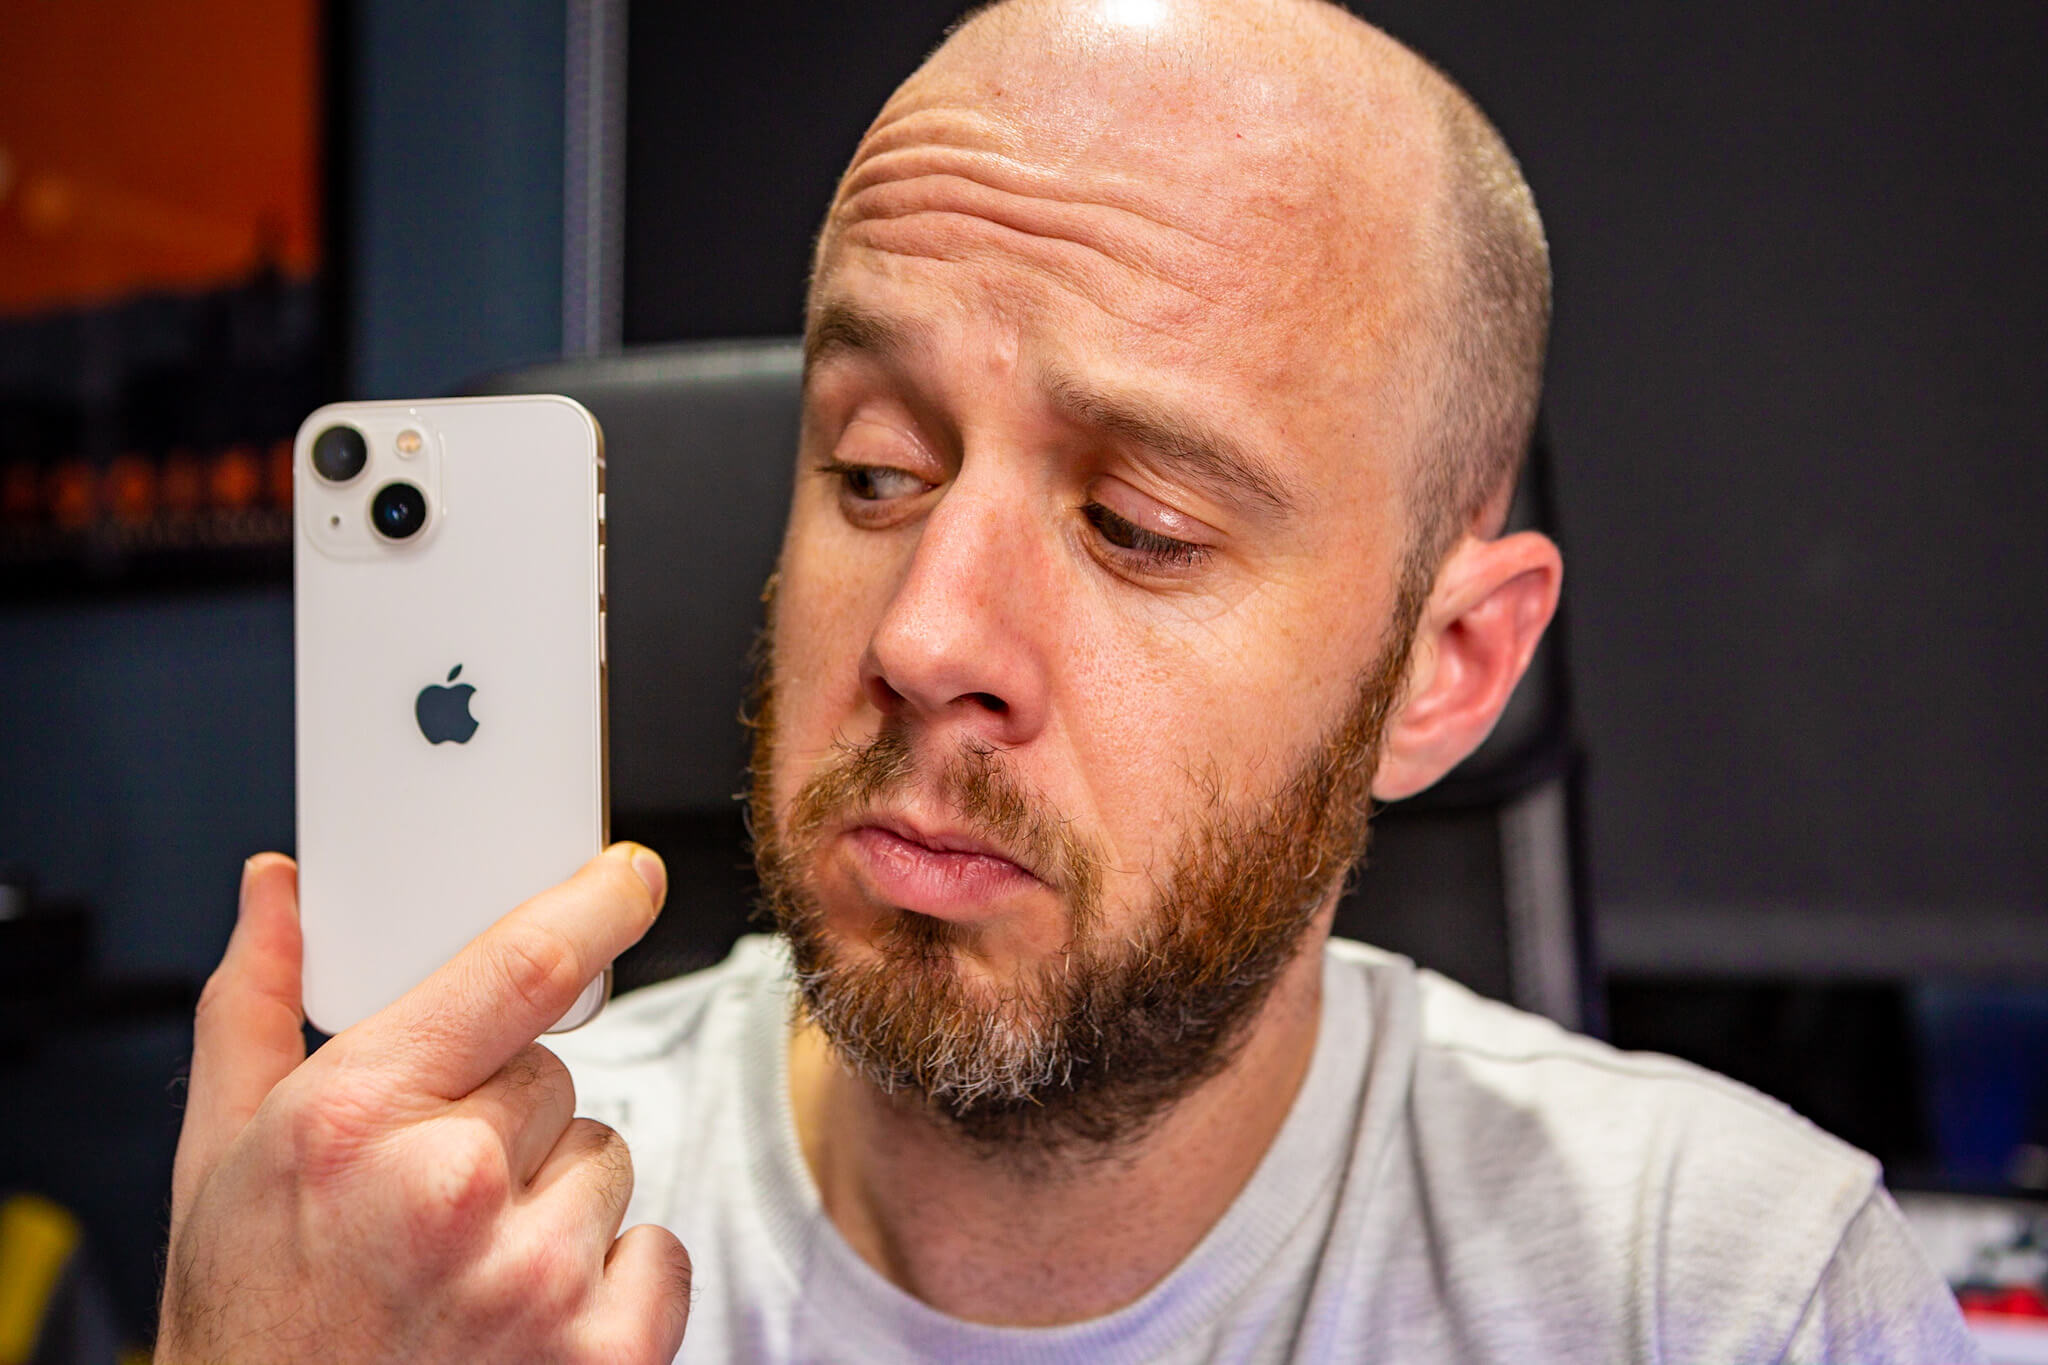 Switching to the iPhone 13 mini – 2 Weeks Later